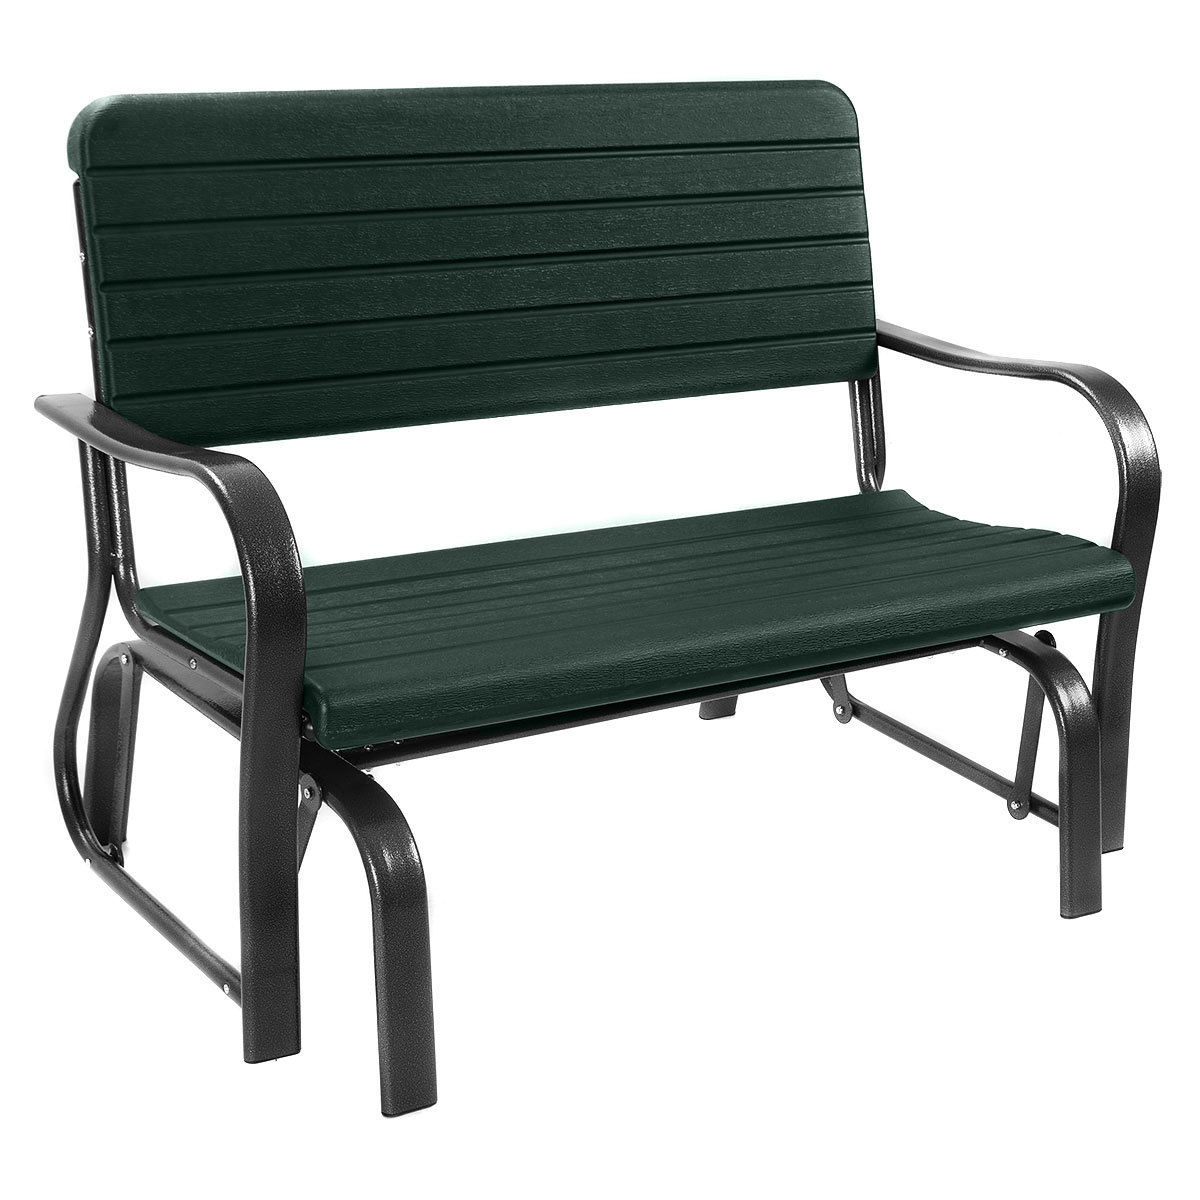 2020 Swing Chair Outdoor Patio Swing Porch Rocker Glider Bench Throughout Outdoor Patio Swing Glider Bench Chairs (View 13 of 30)